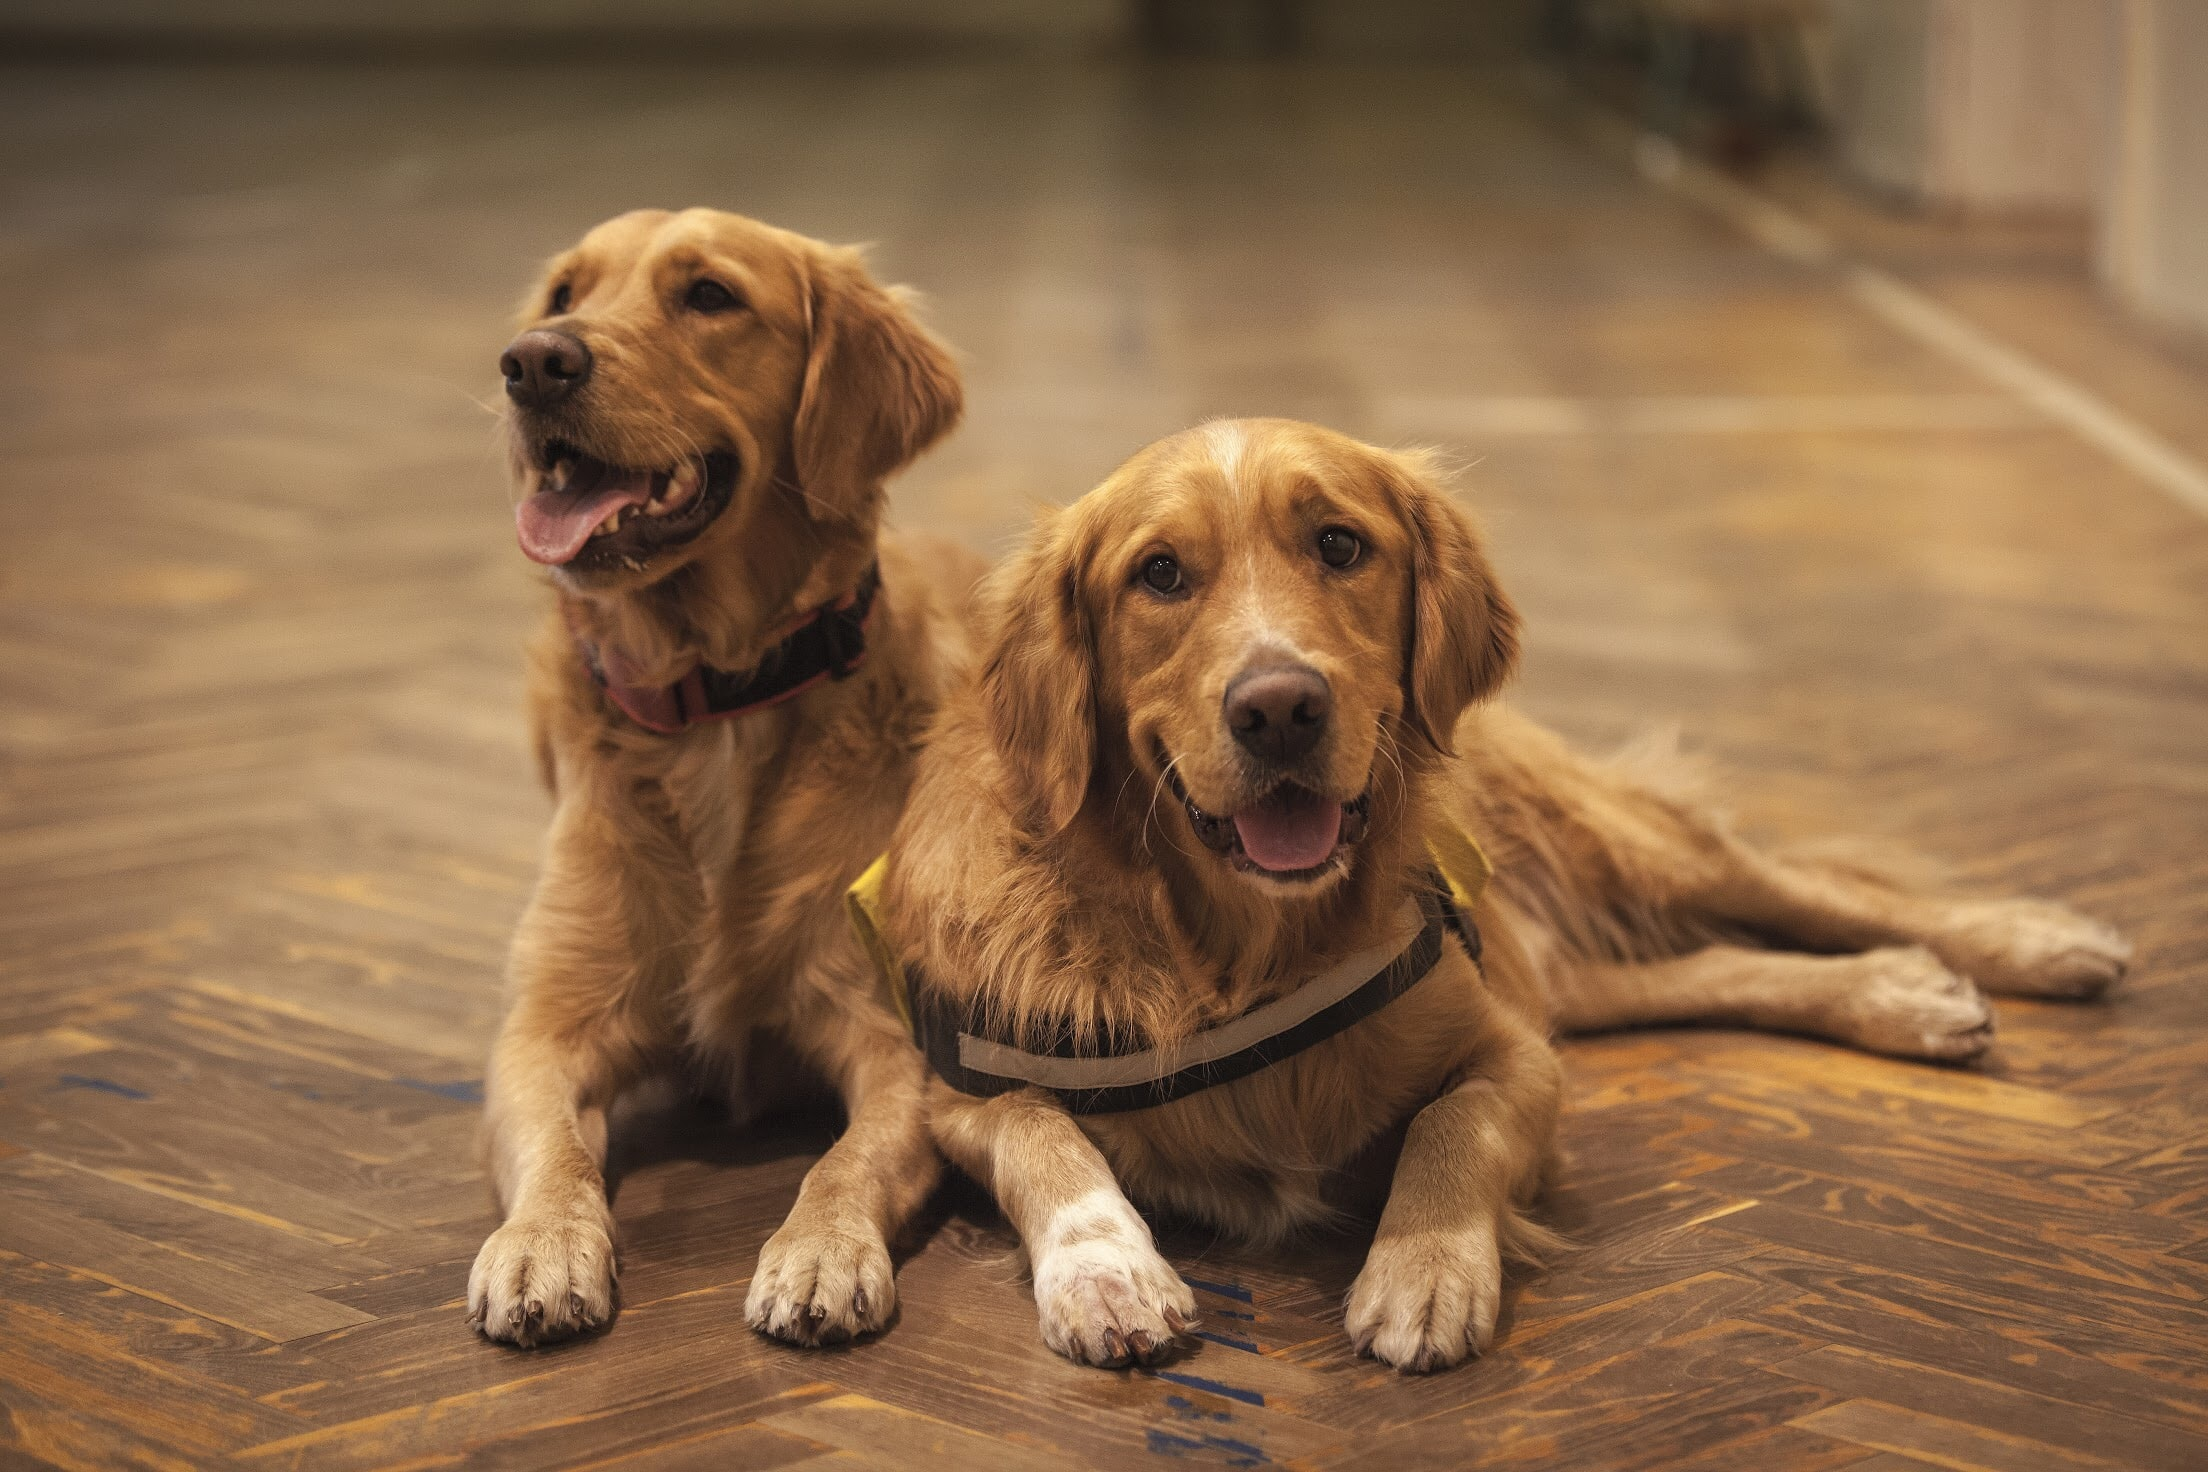 two adult golden retrievers